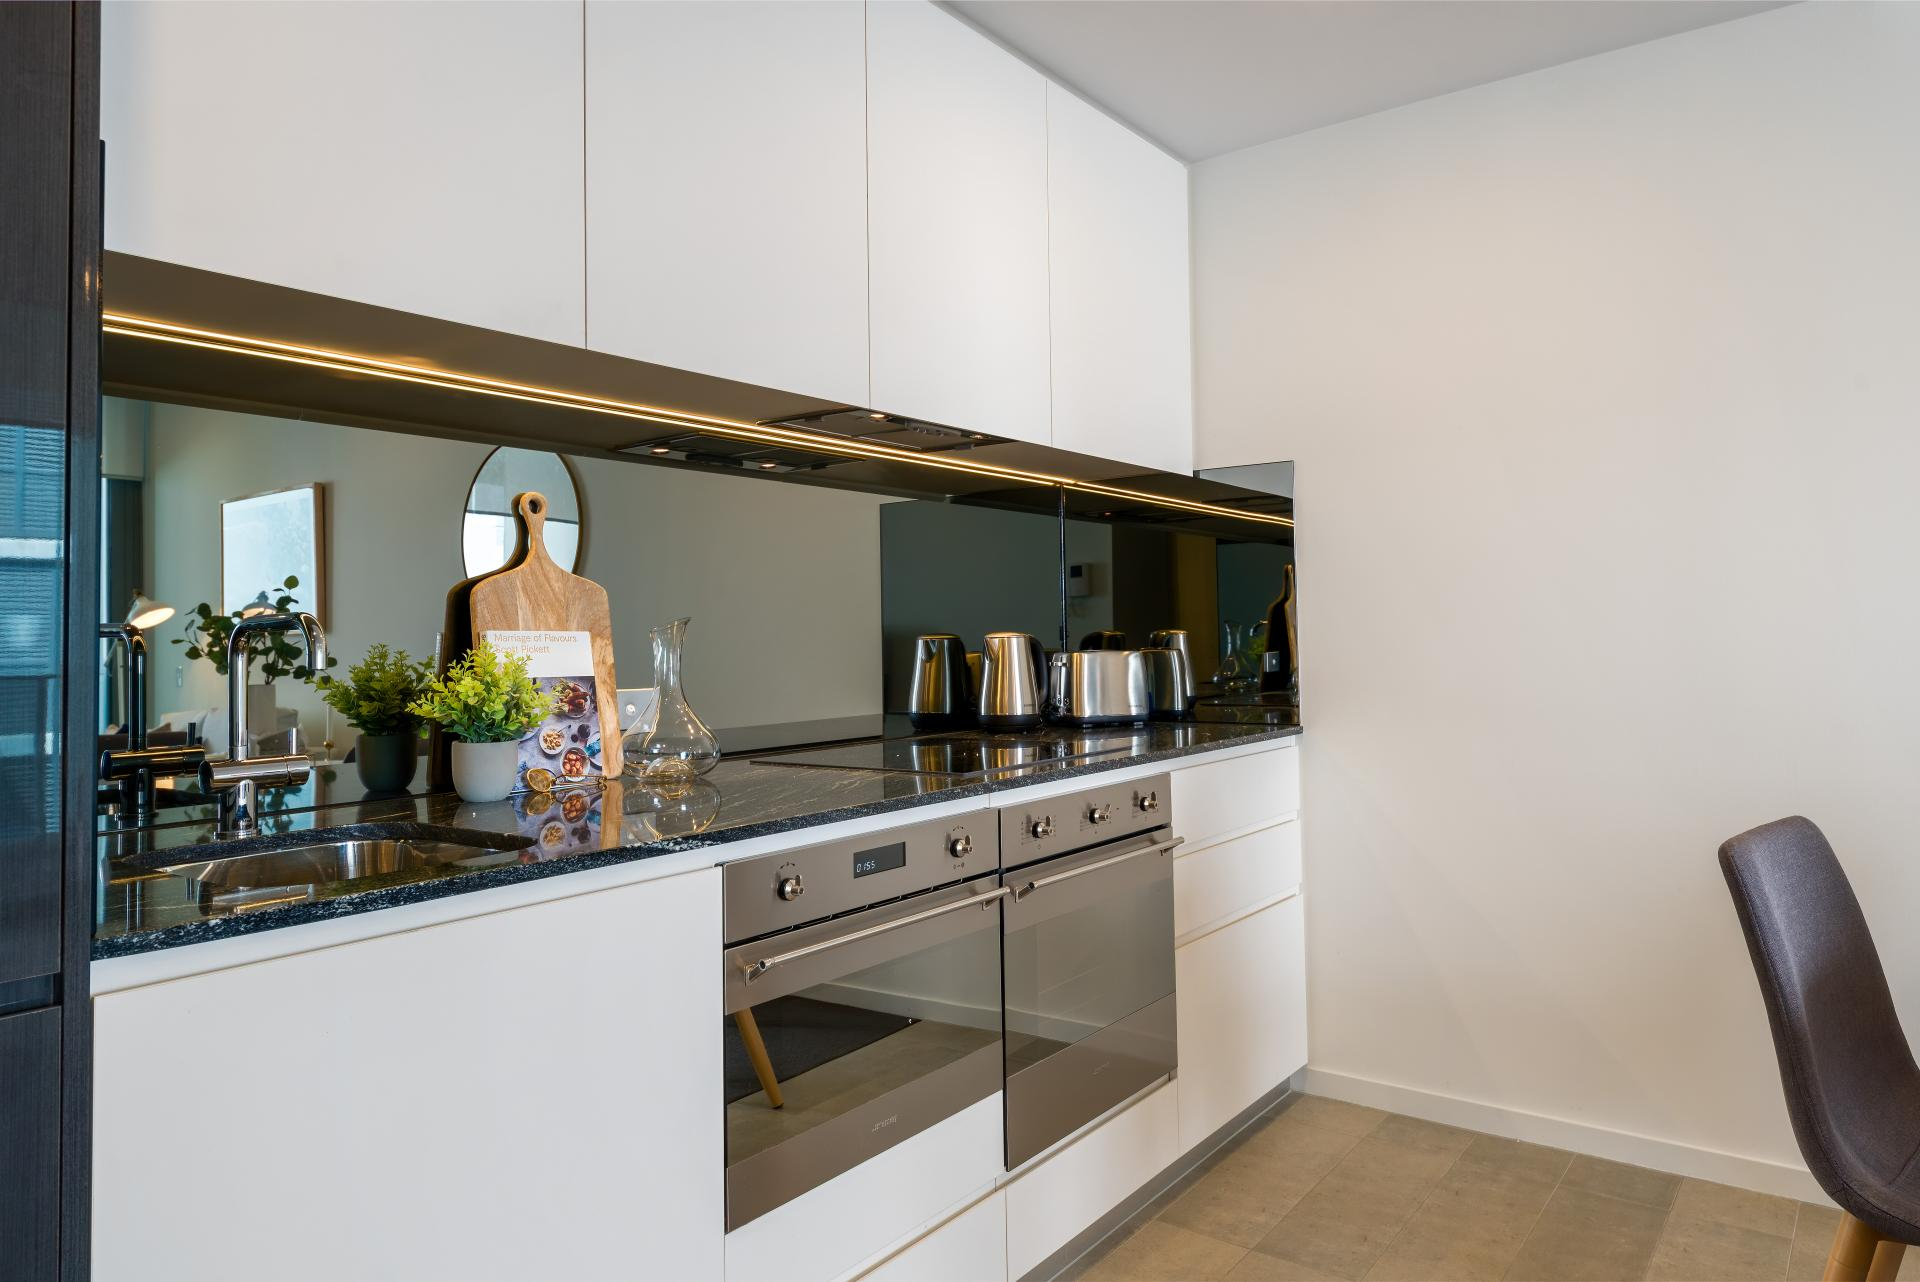 Kitchen at Riverside Parade Apartments by Fraser, Centre, Perth